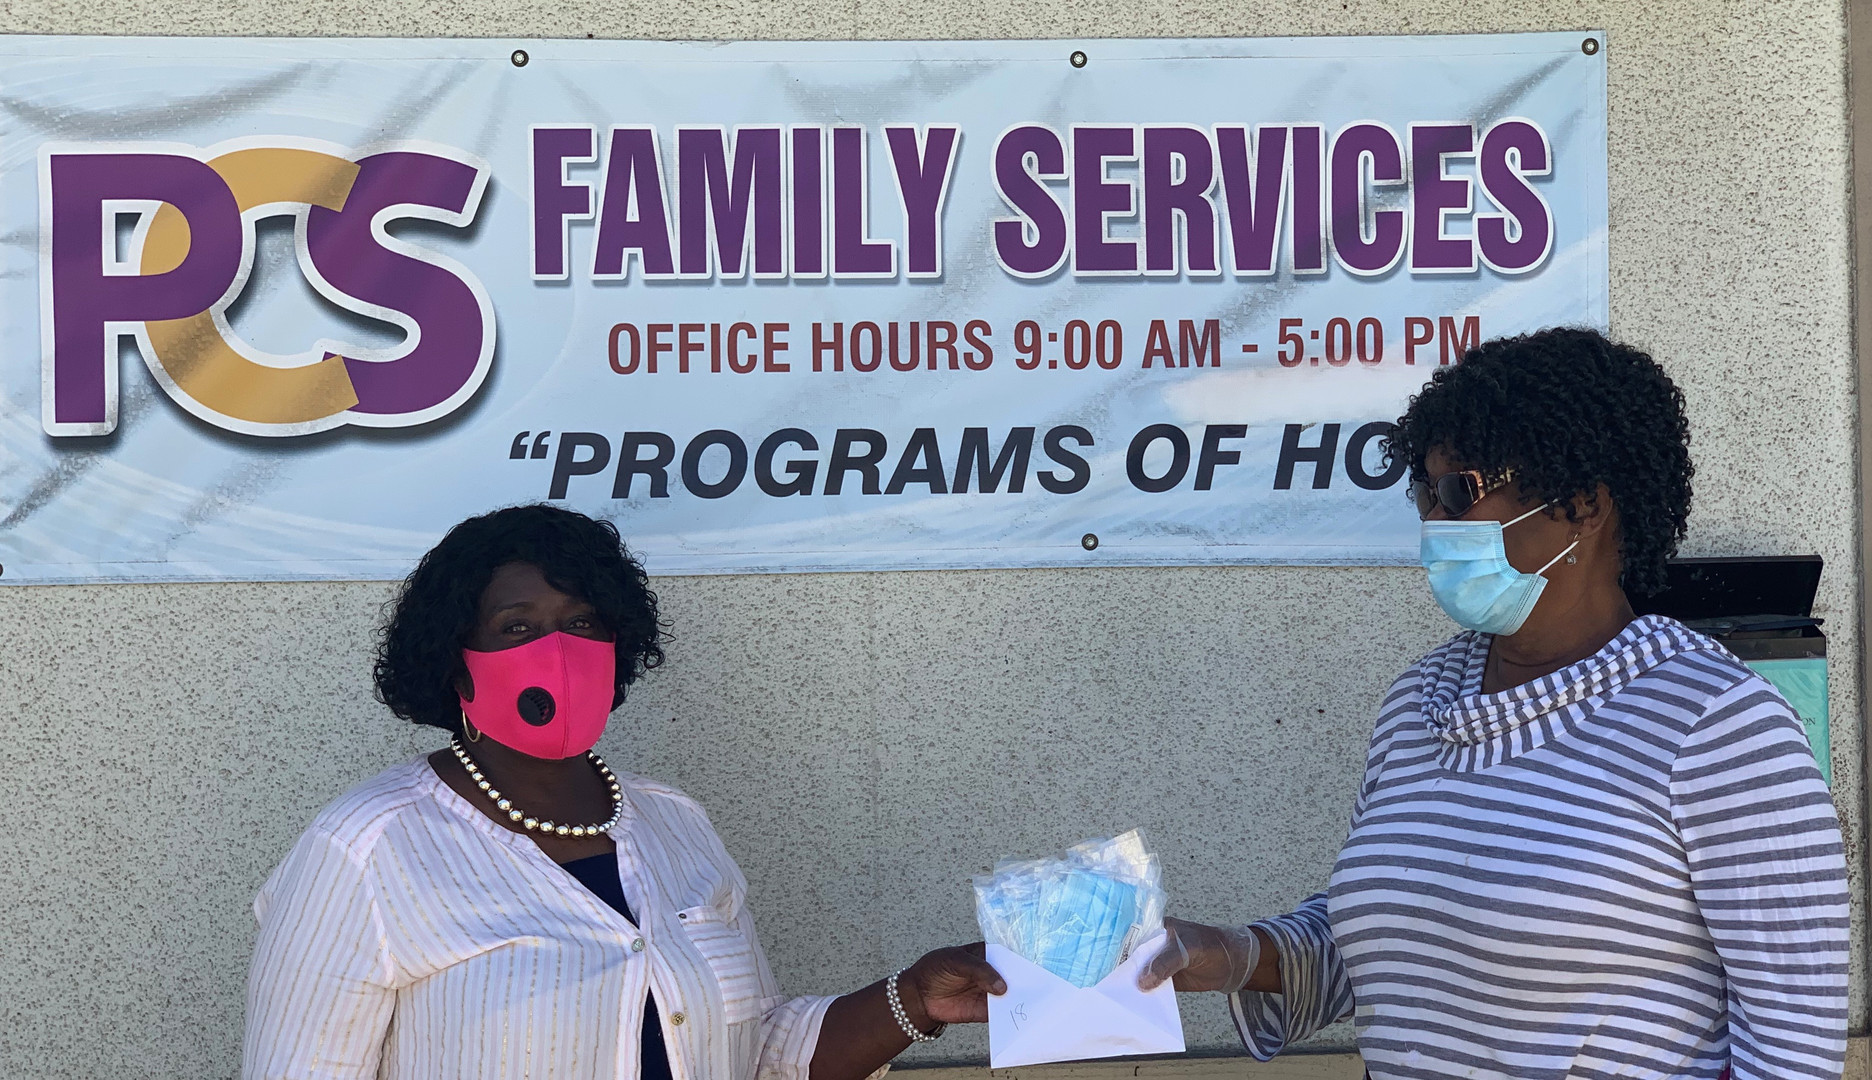 Family Services Masks.jpeg